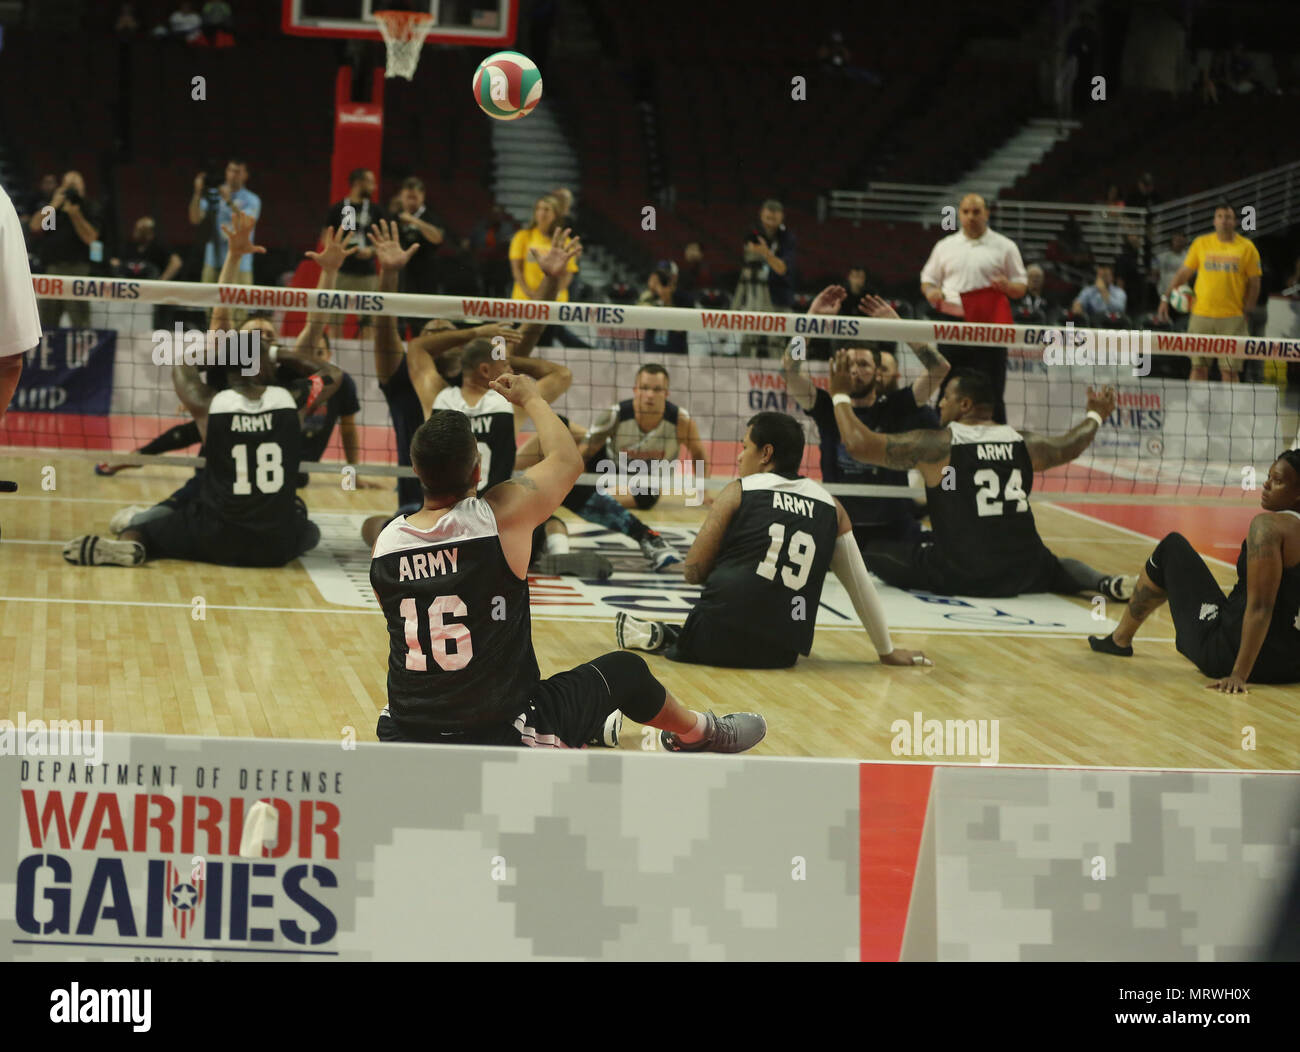 wheelchair volleyball cheap racing chair u s army sitting team play against the navy during 2017 department of defense warrior games at chicago ill